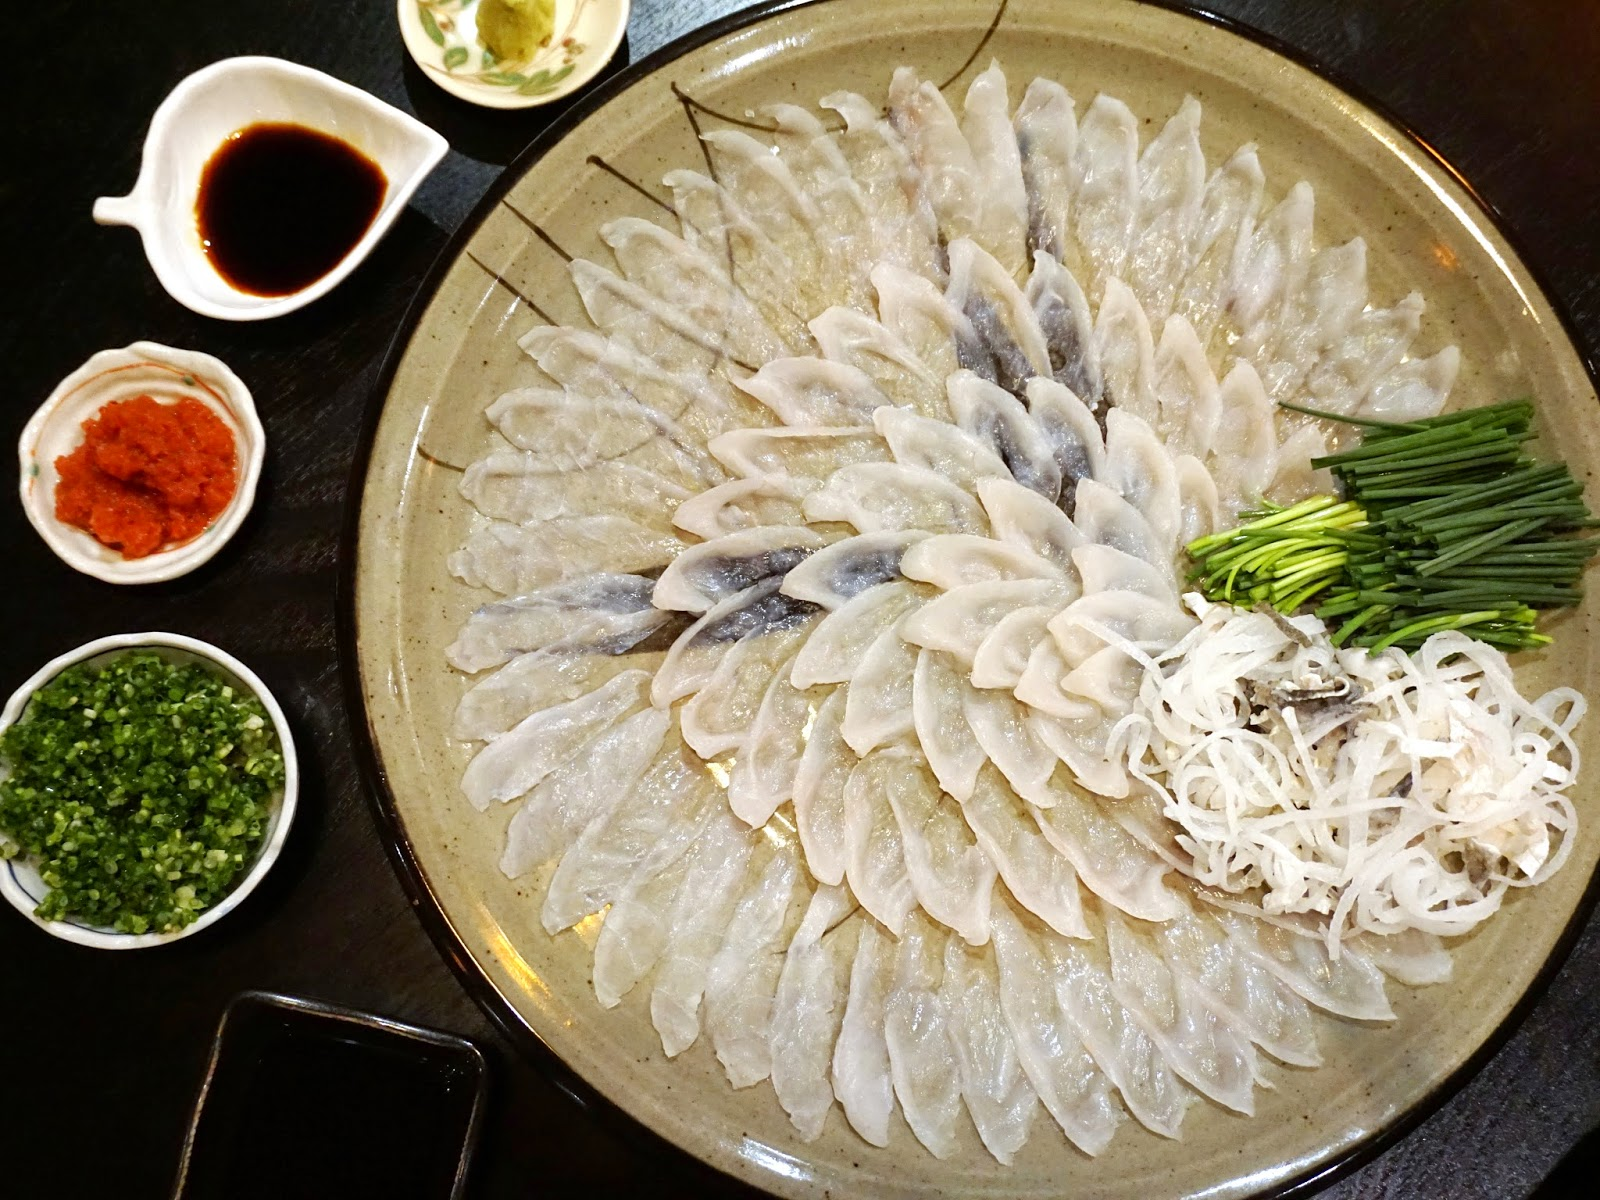 Most dangerous things in the world-Most dangerous food: Fugu